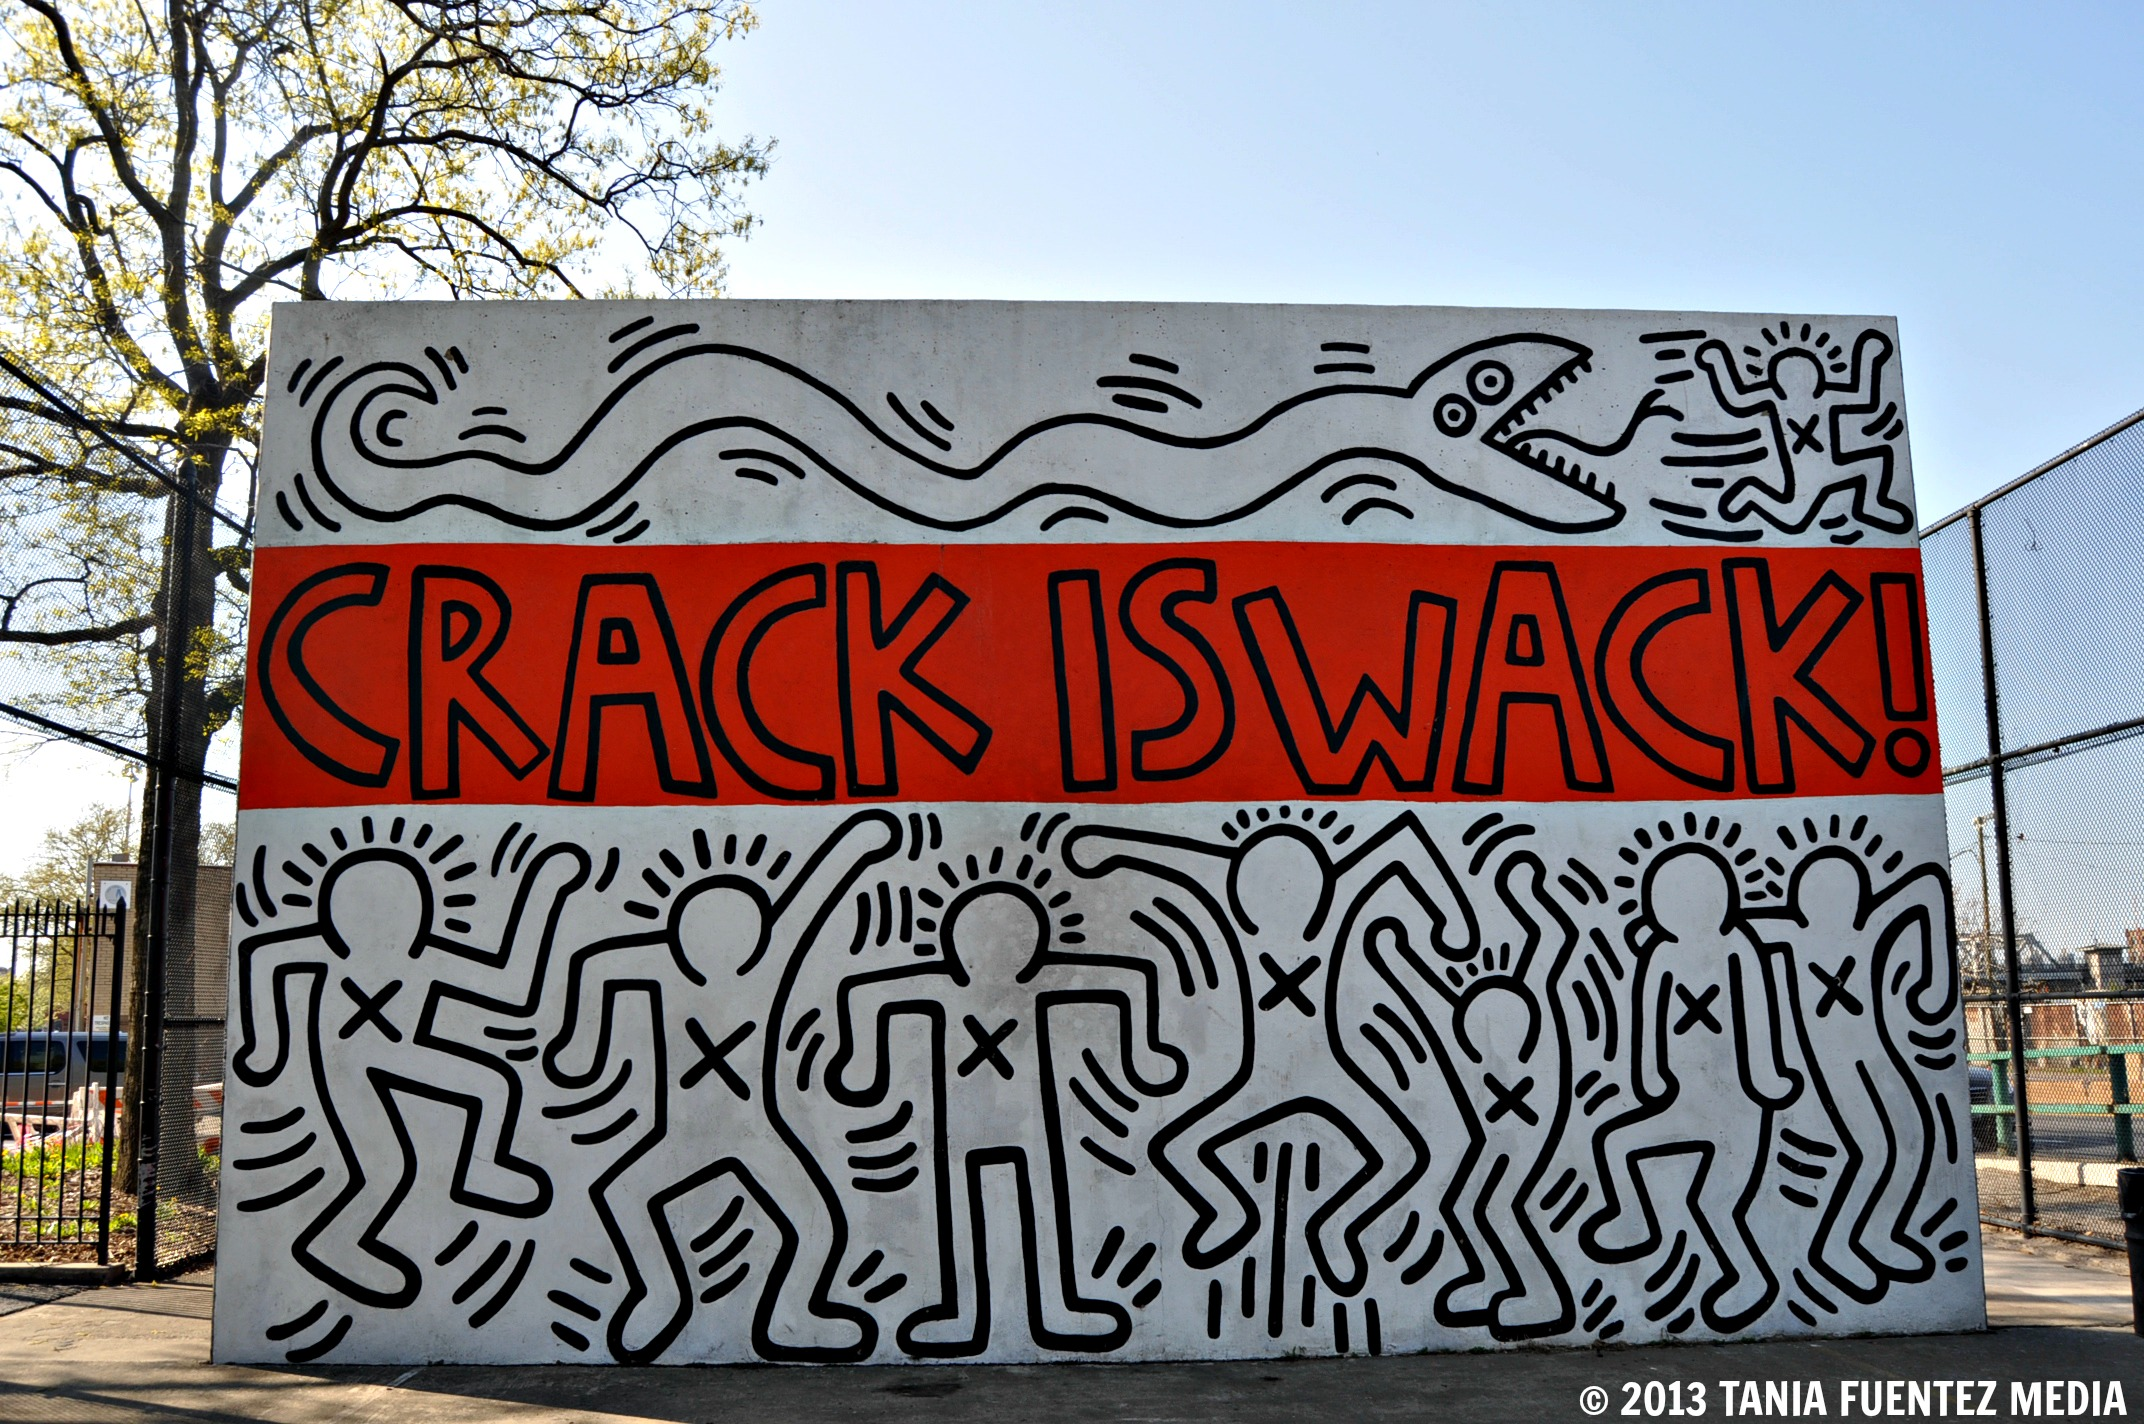 Weekly photo challenge culture tania fuentez media for Crack is wack keith haring mural